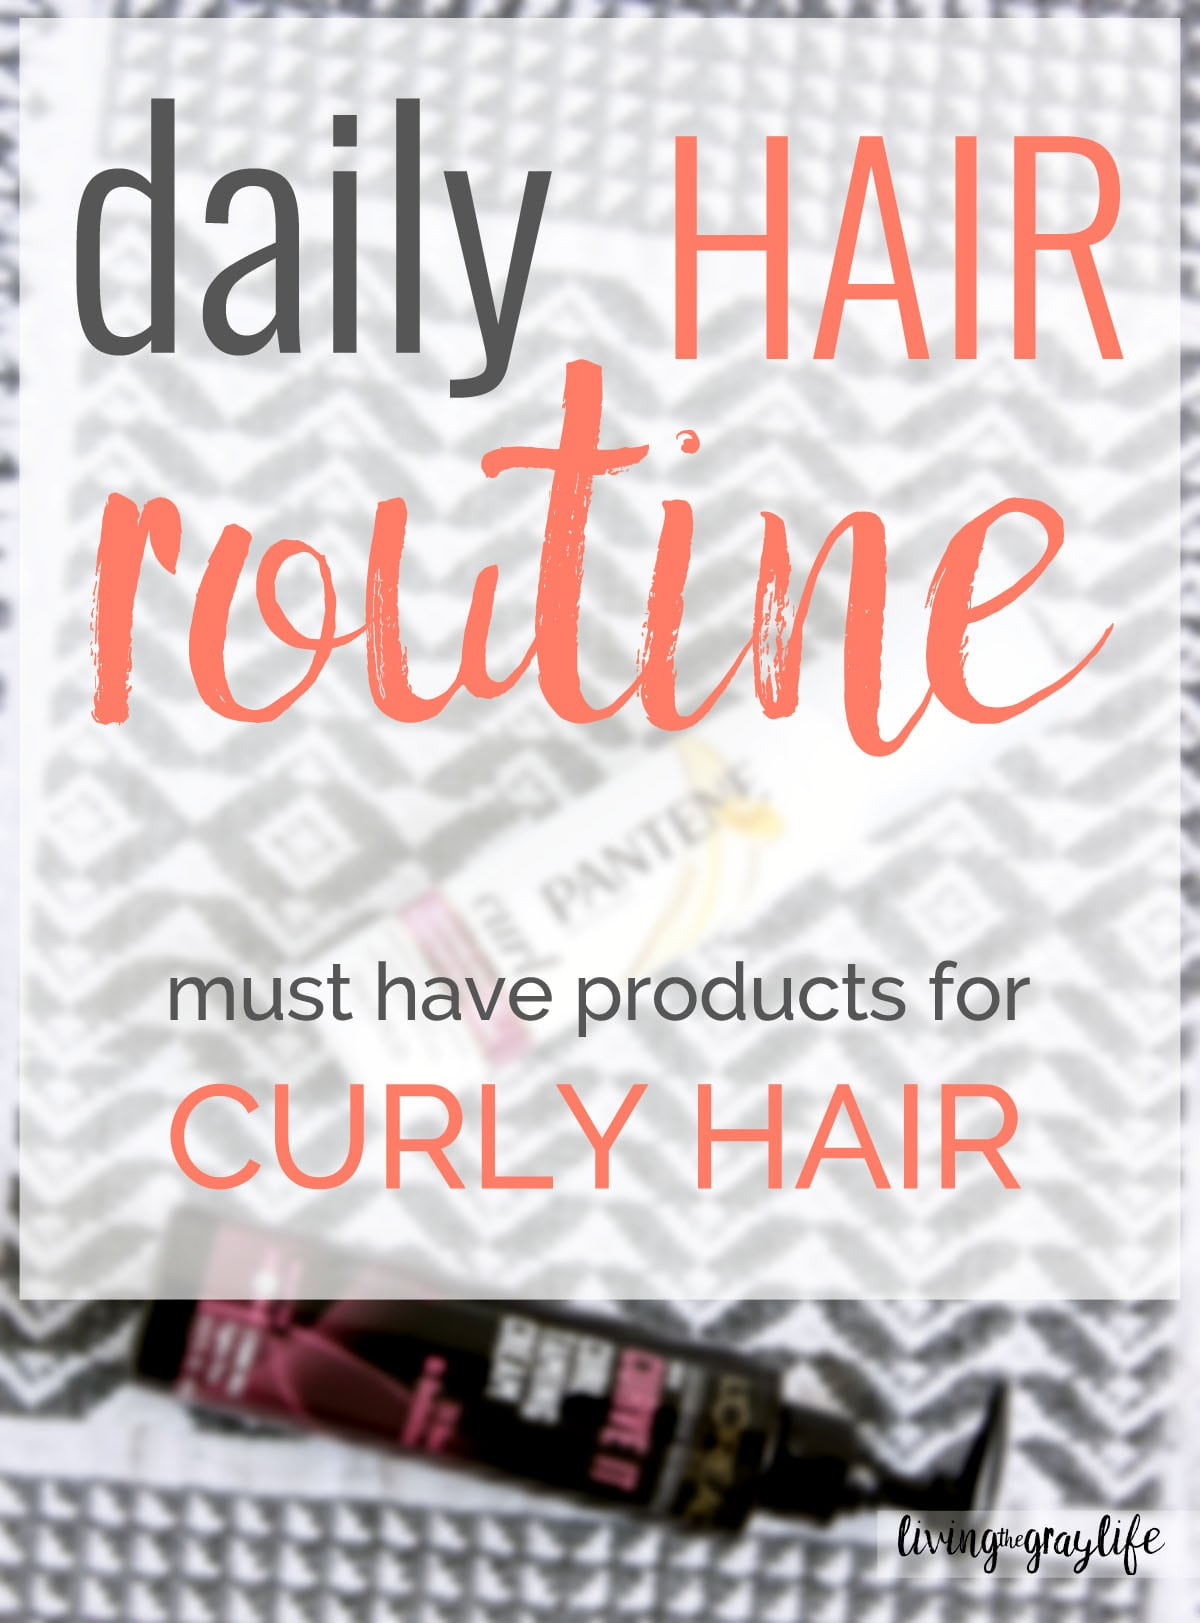 Daily curly hair routine - products & techniques